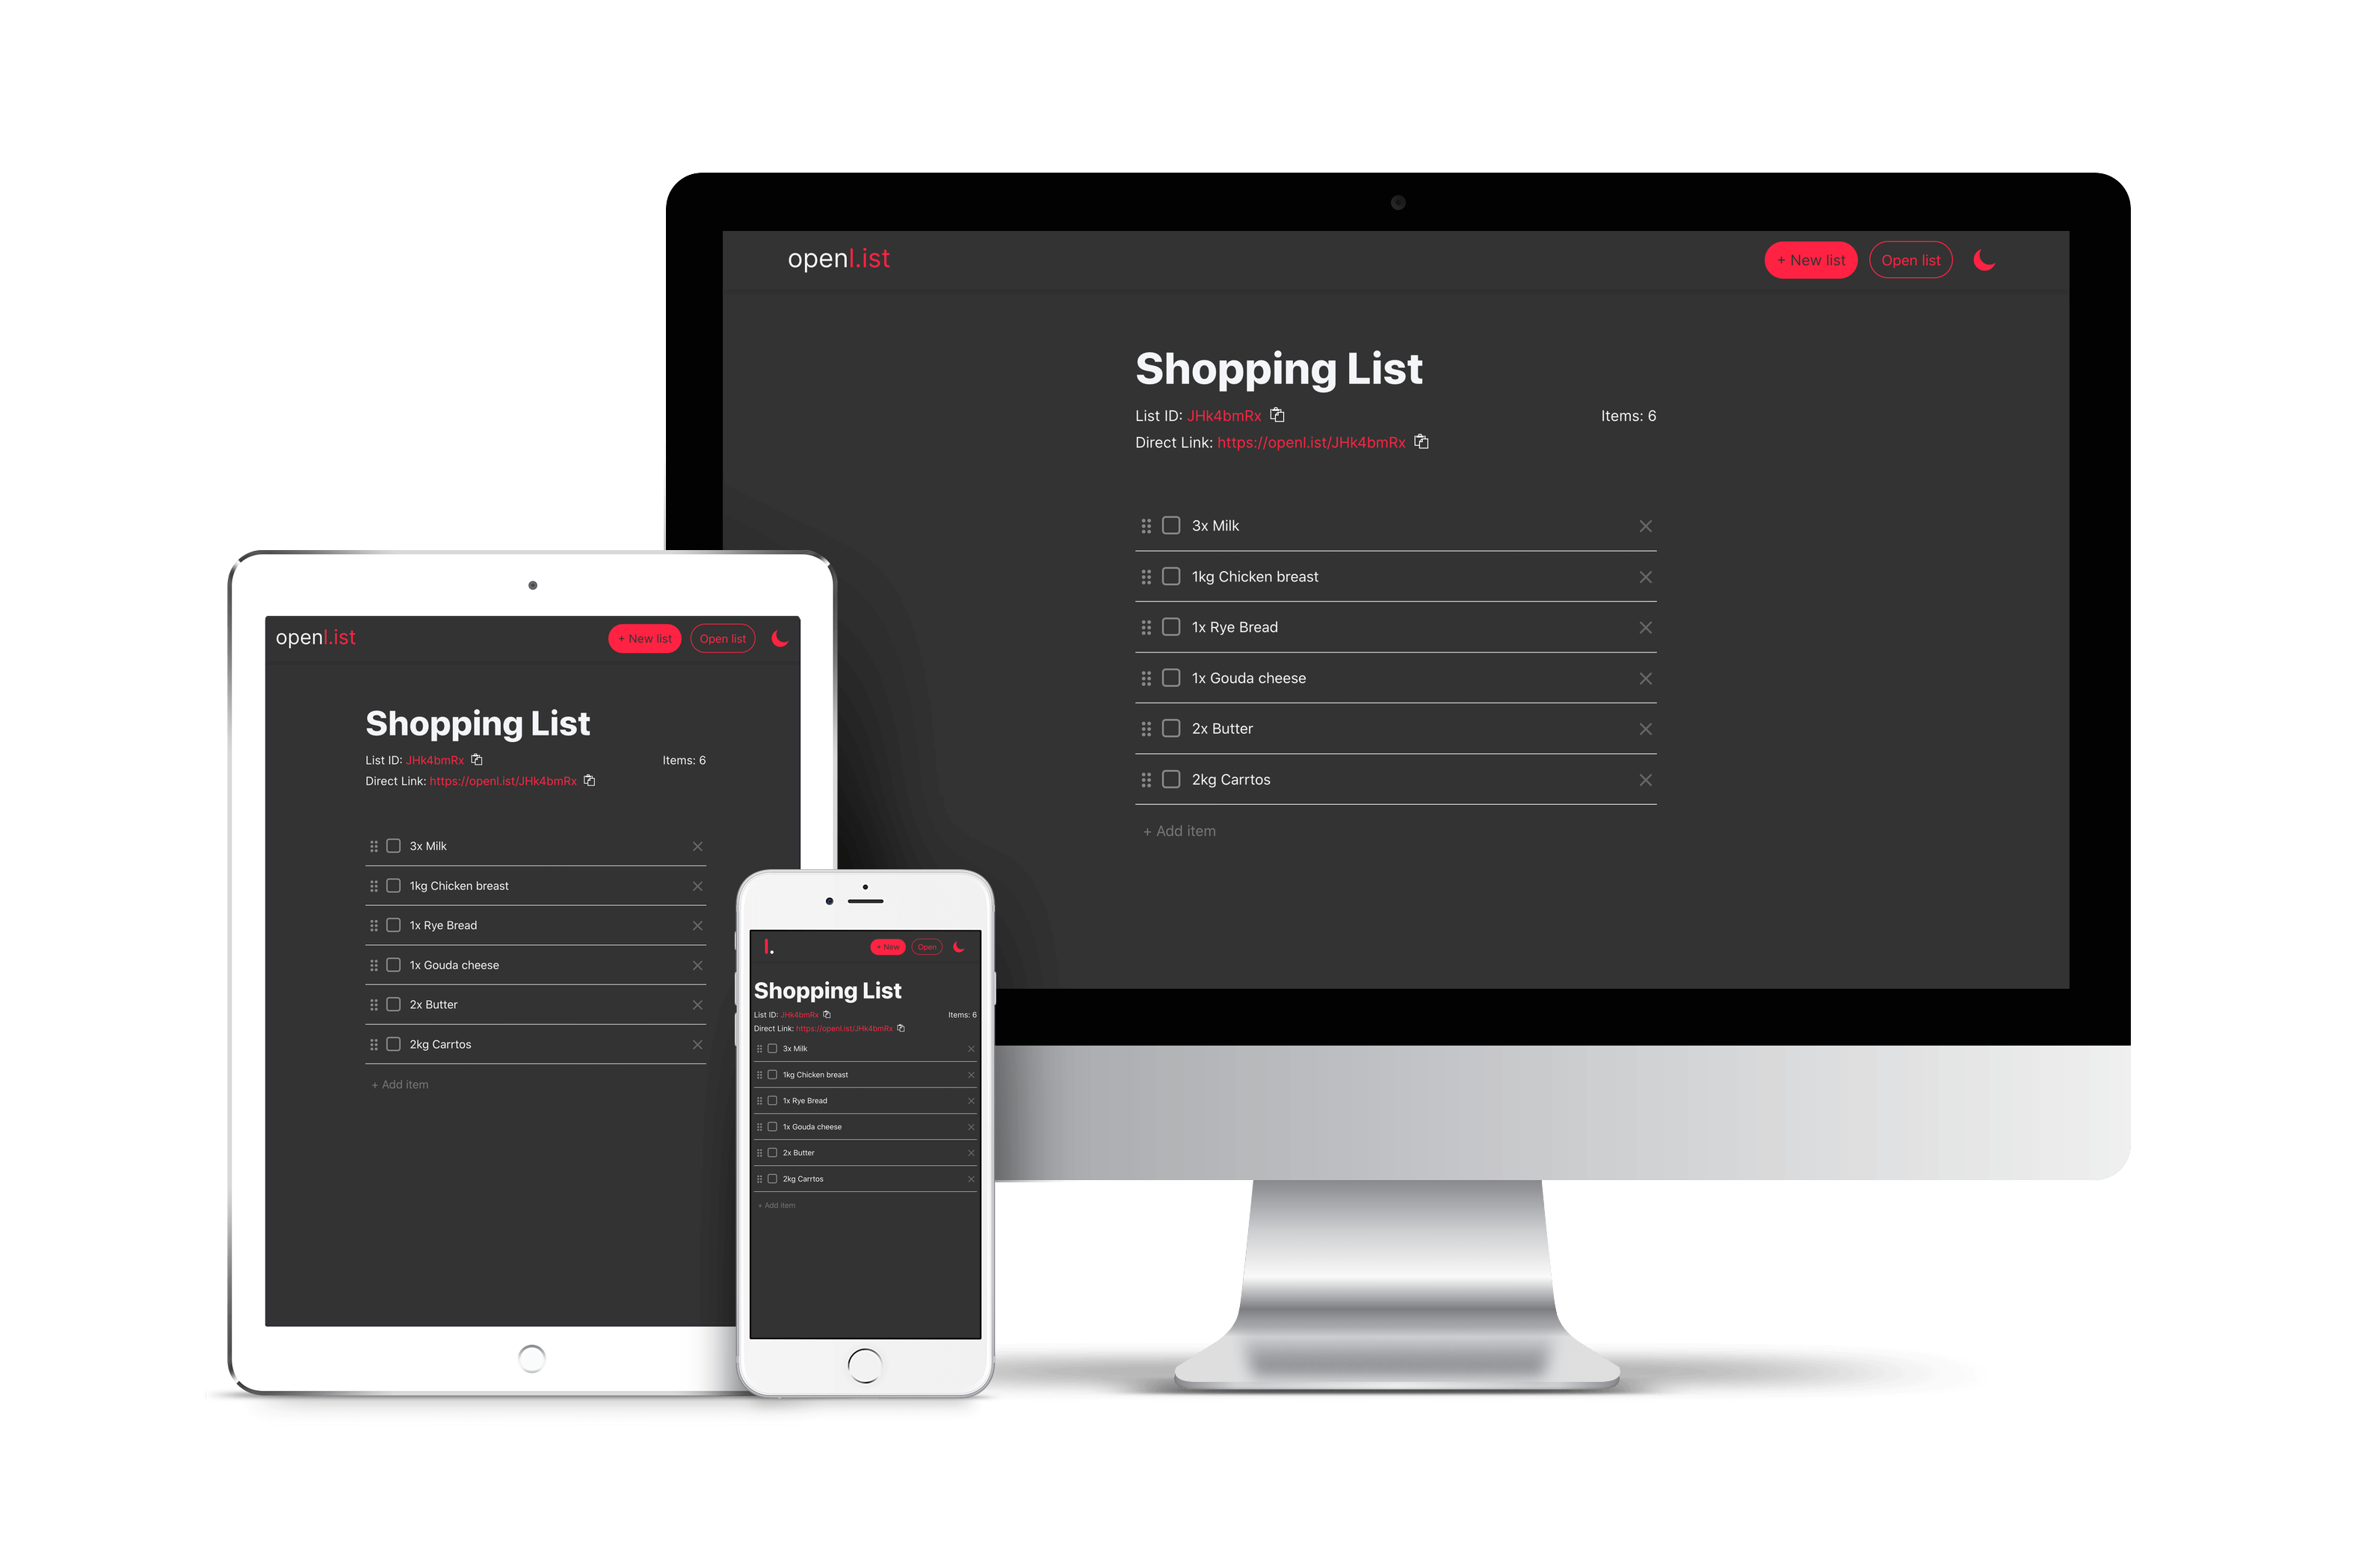 Example of openl.ist shopping list